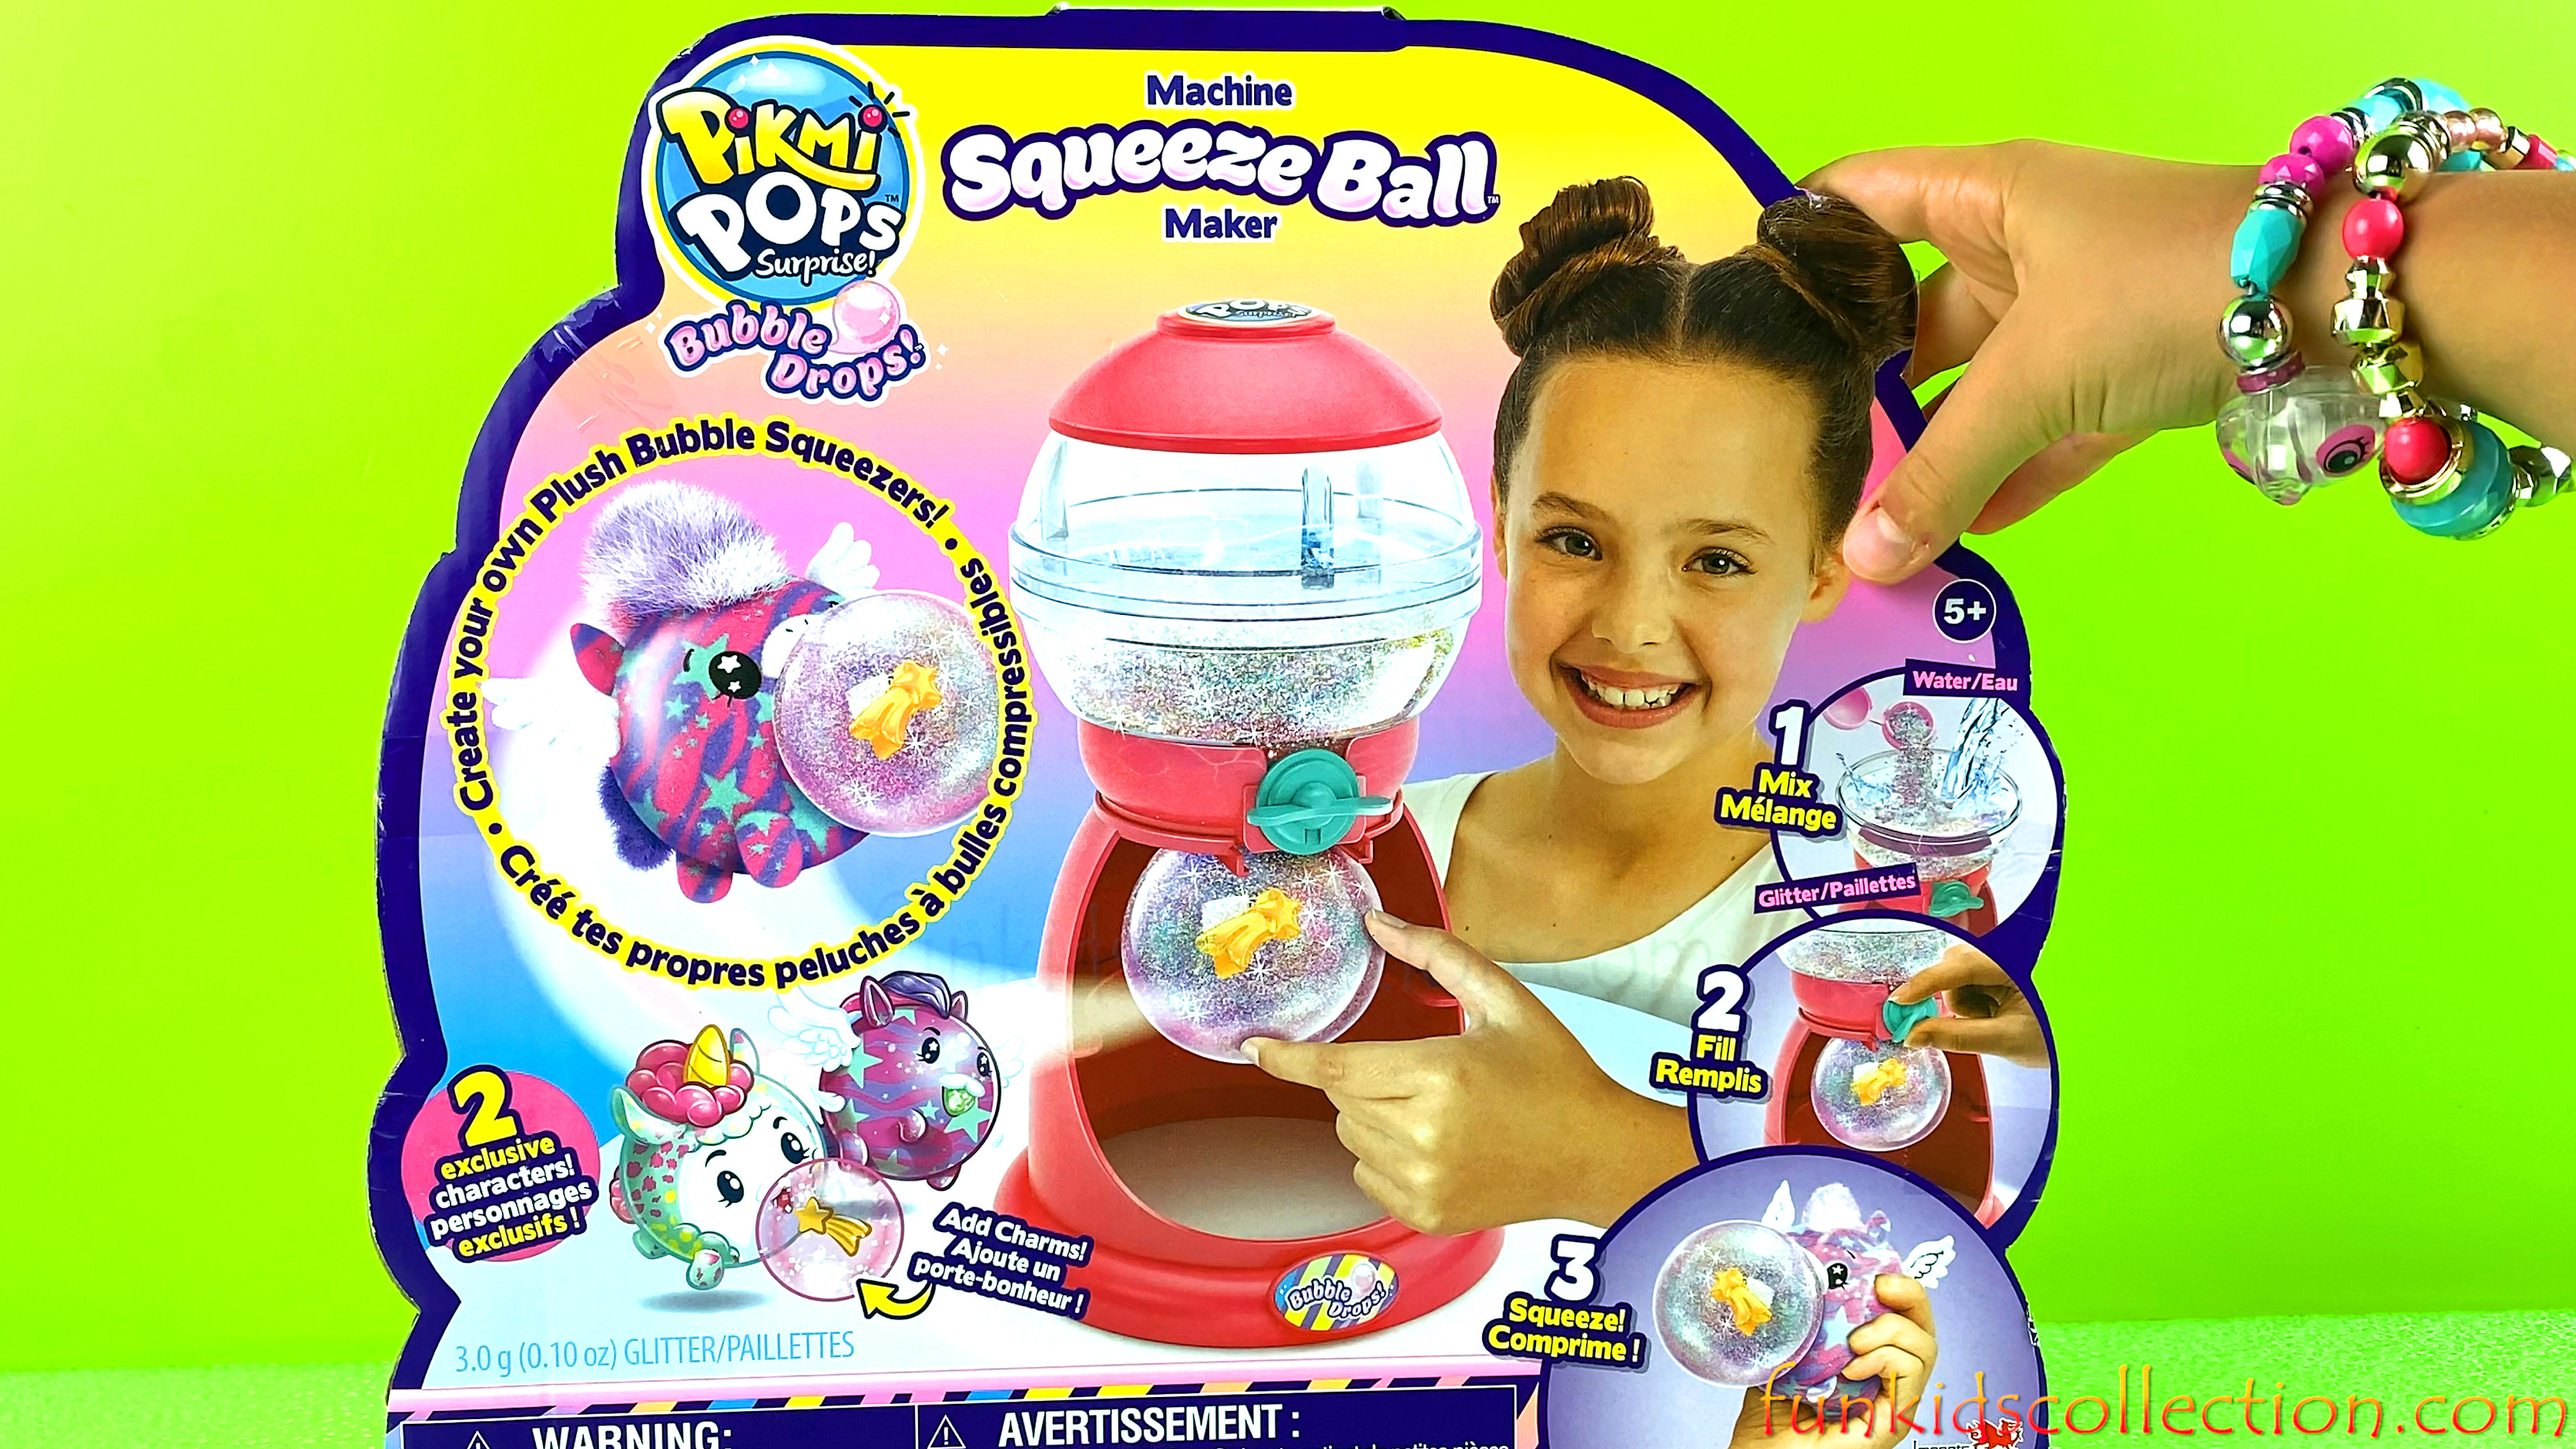 Pikmi Pops Surprise Bubble Drops | Pikmi Pops Surprise Machine Squeeze Ball Maker | EBD Toys